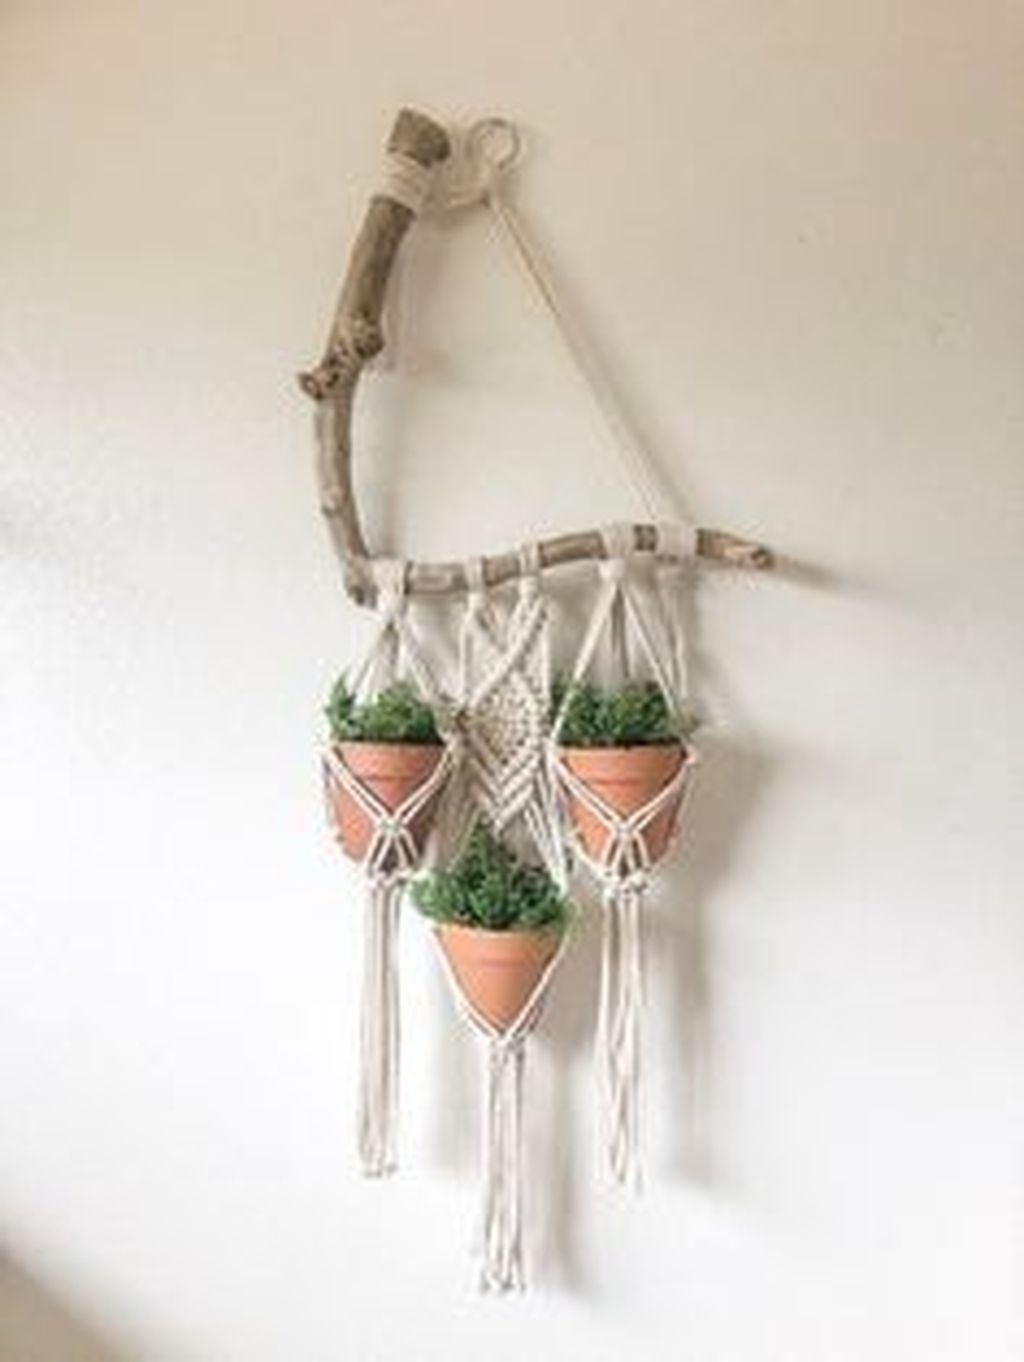 30+ Cozy Hanging Plant Decor Ideas To For Your Garden #hangingplantsindoor